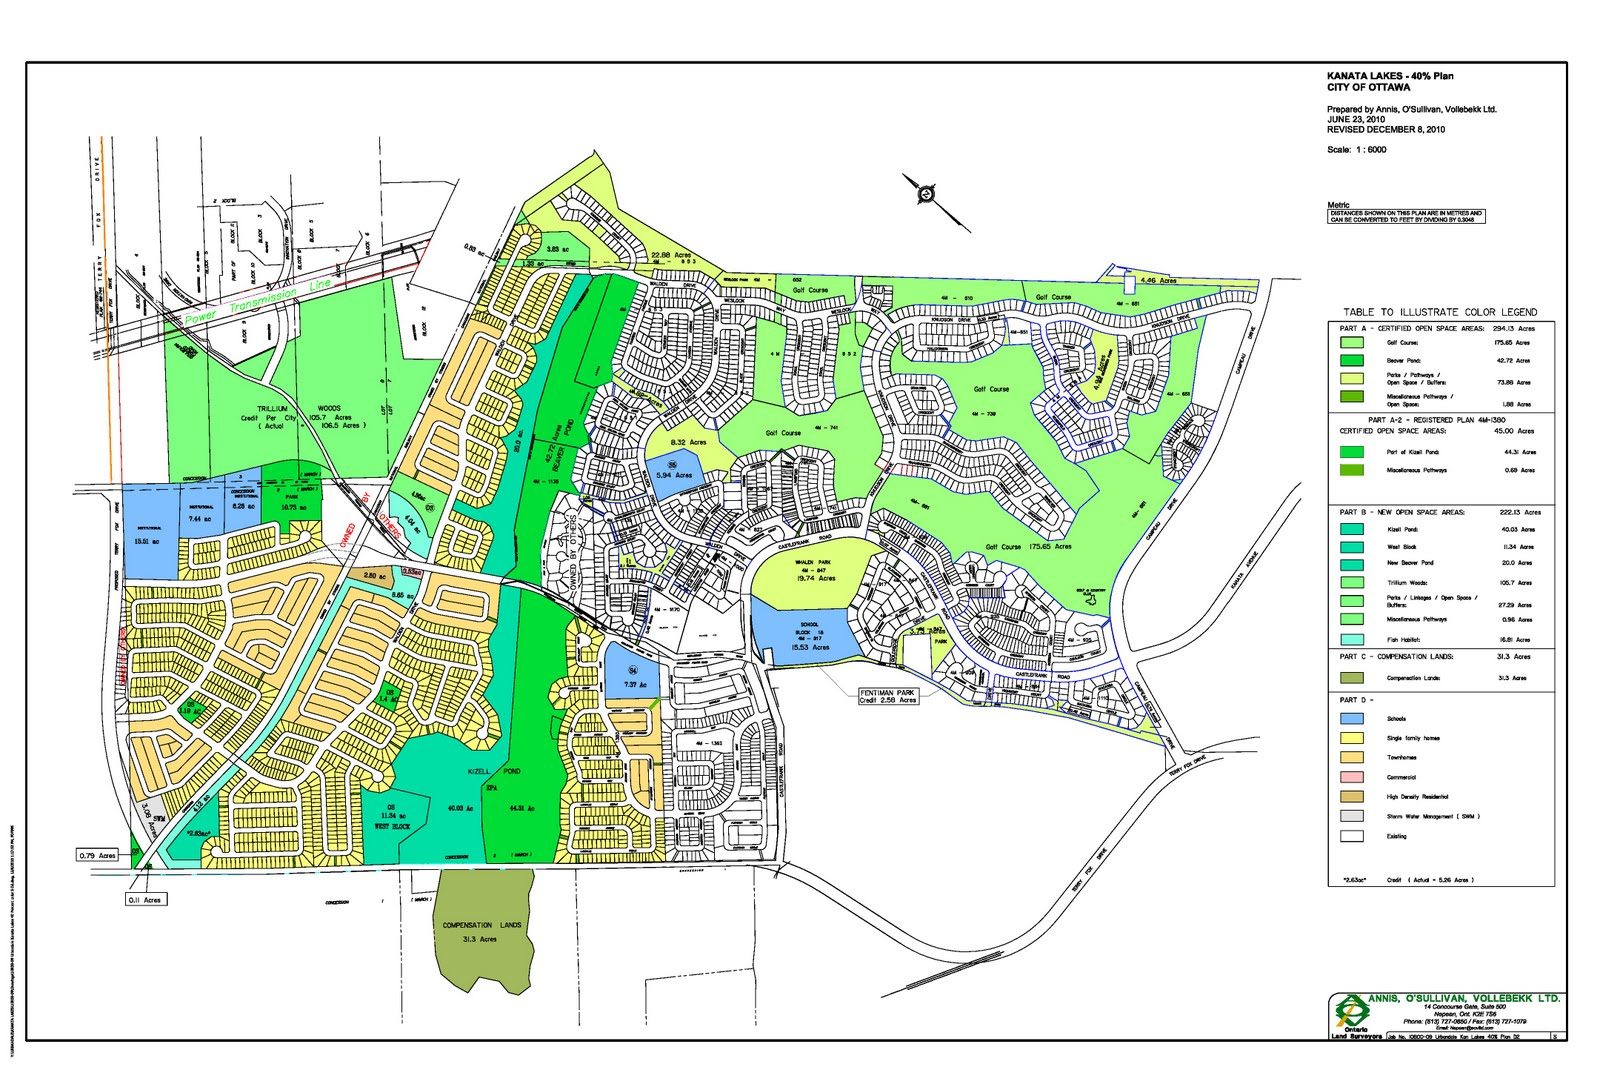 THE FIFTH COLUMN Map of The Kanata Lakes 40 Travesty